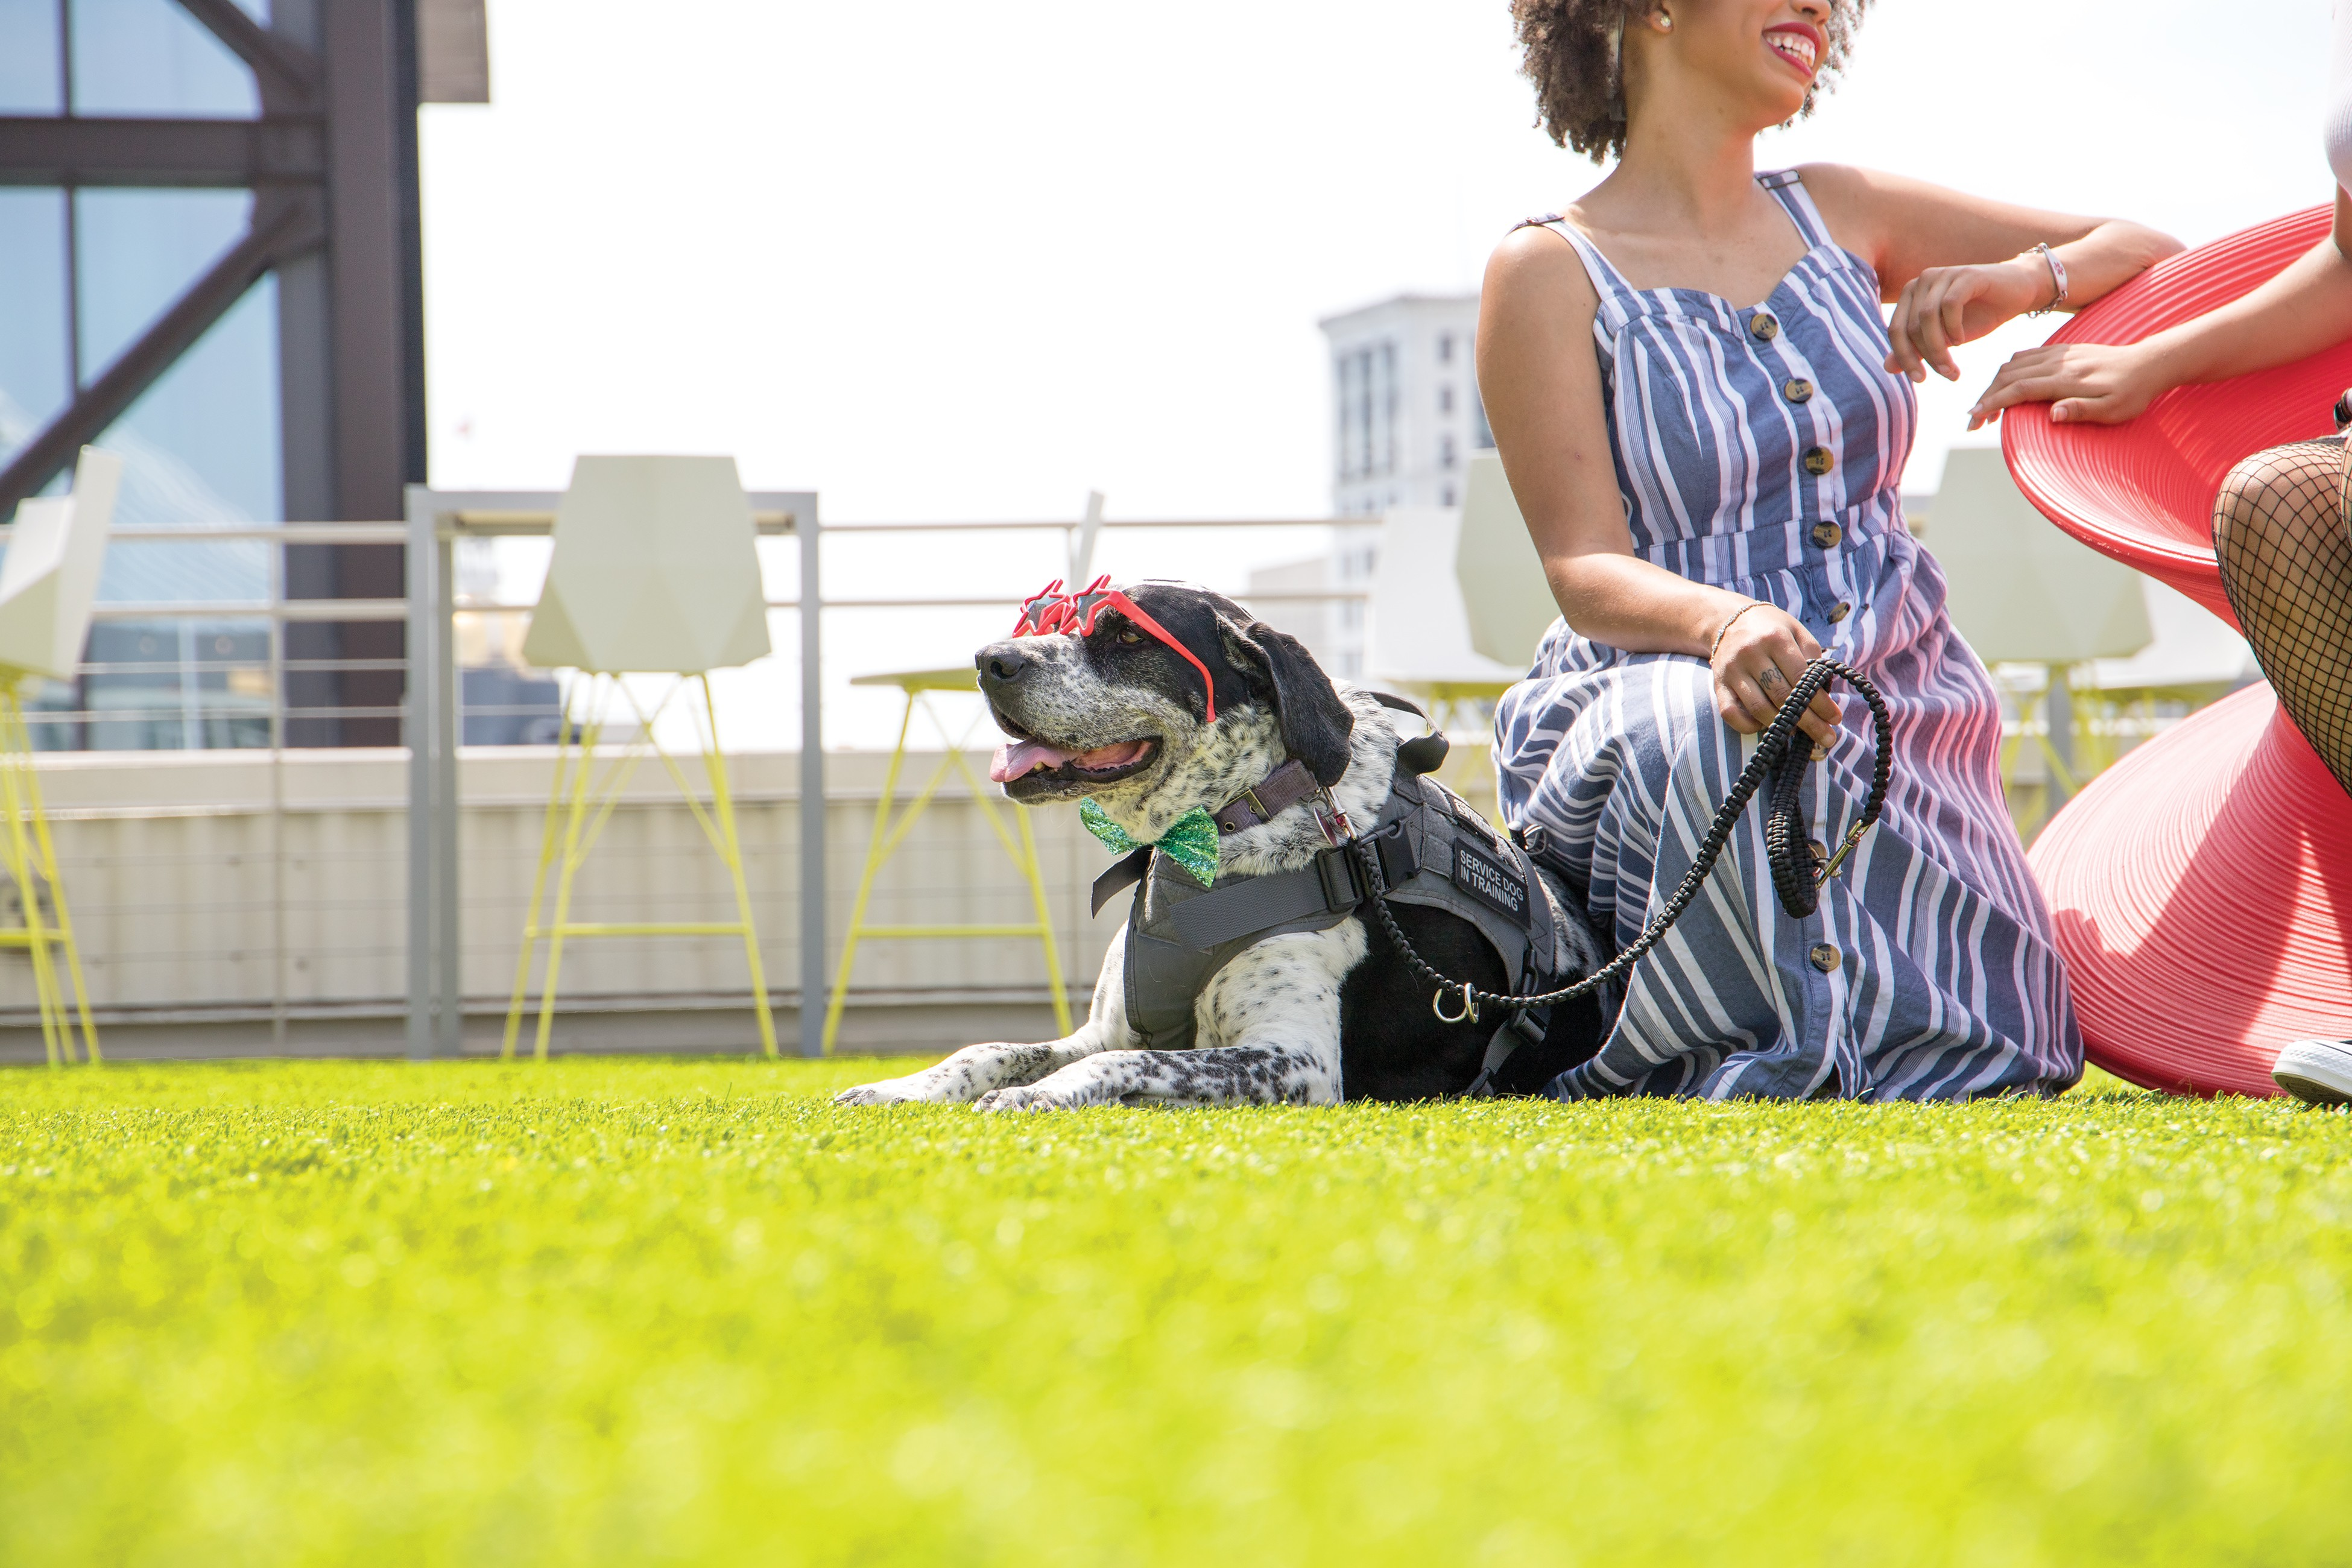 Service dog Bambi sports some stunning shades on the lawn at Electric Moon at Plant Riverside. - PHOTO BY HUNTER MCCUMBER